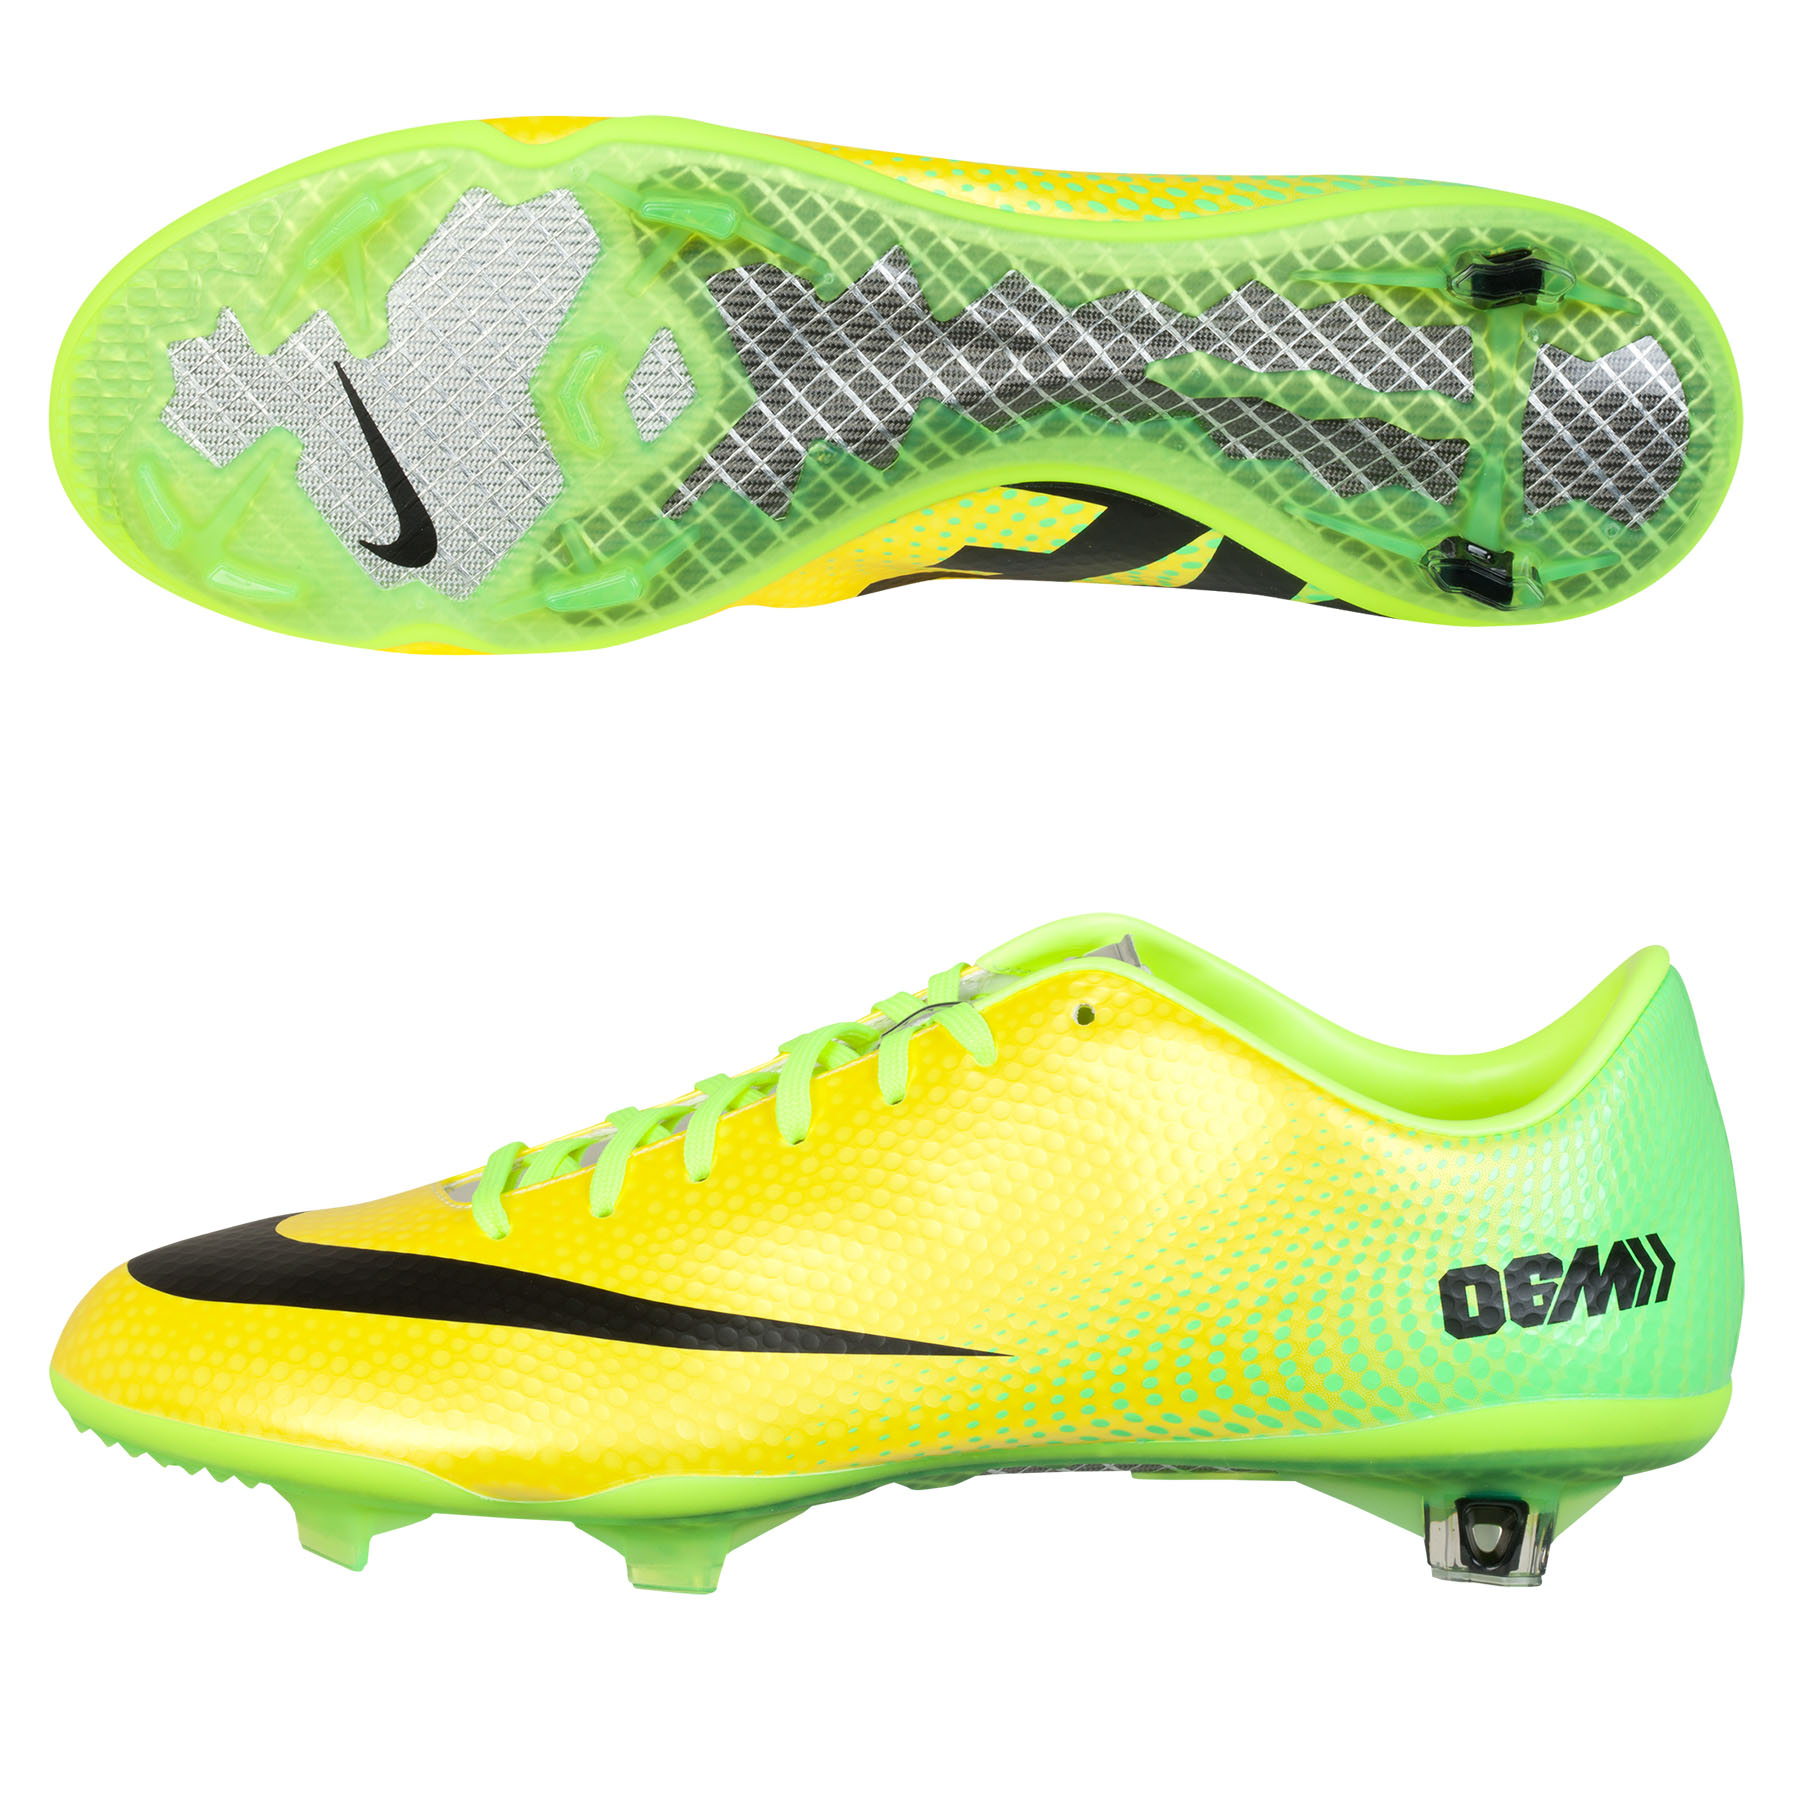 Nike Mercurial Vapor IX Firm Ground Football Boots Yellow